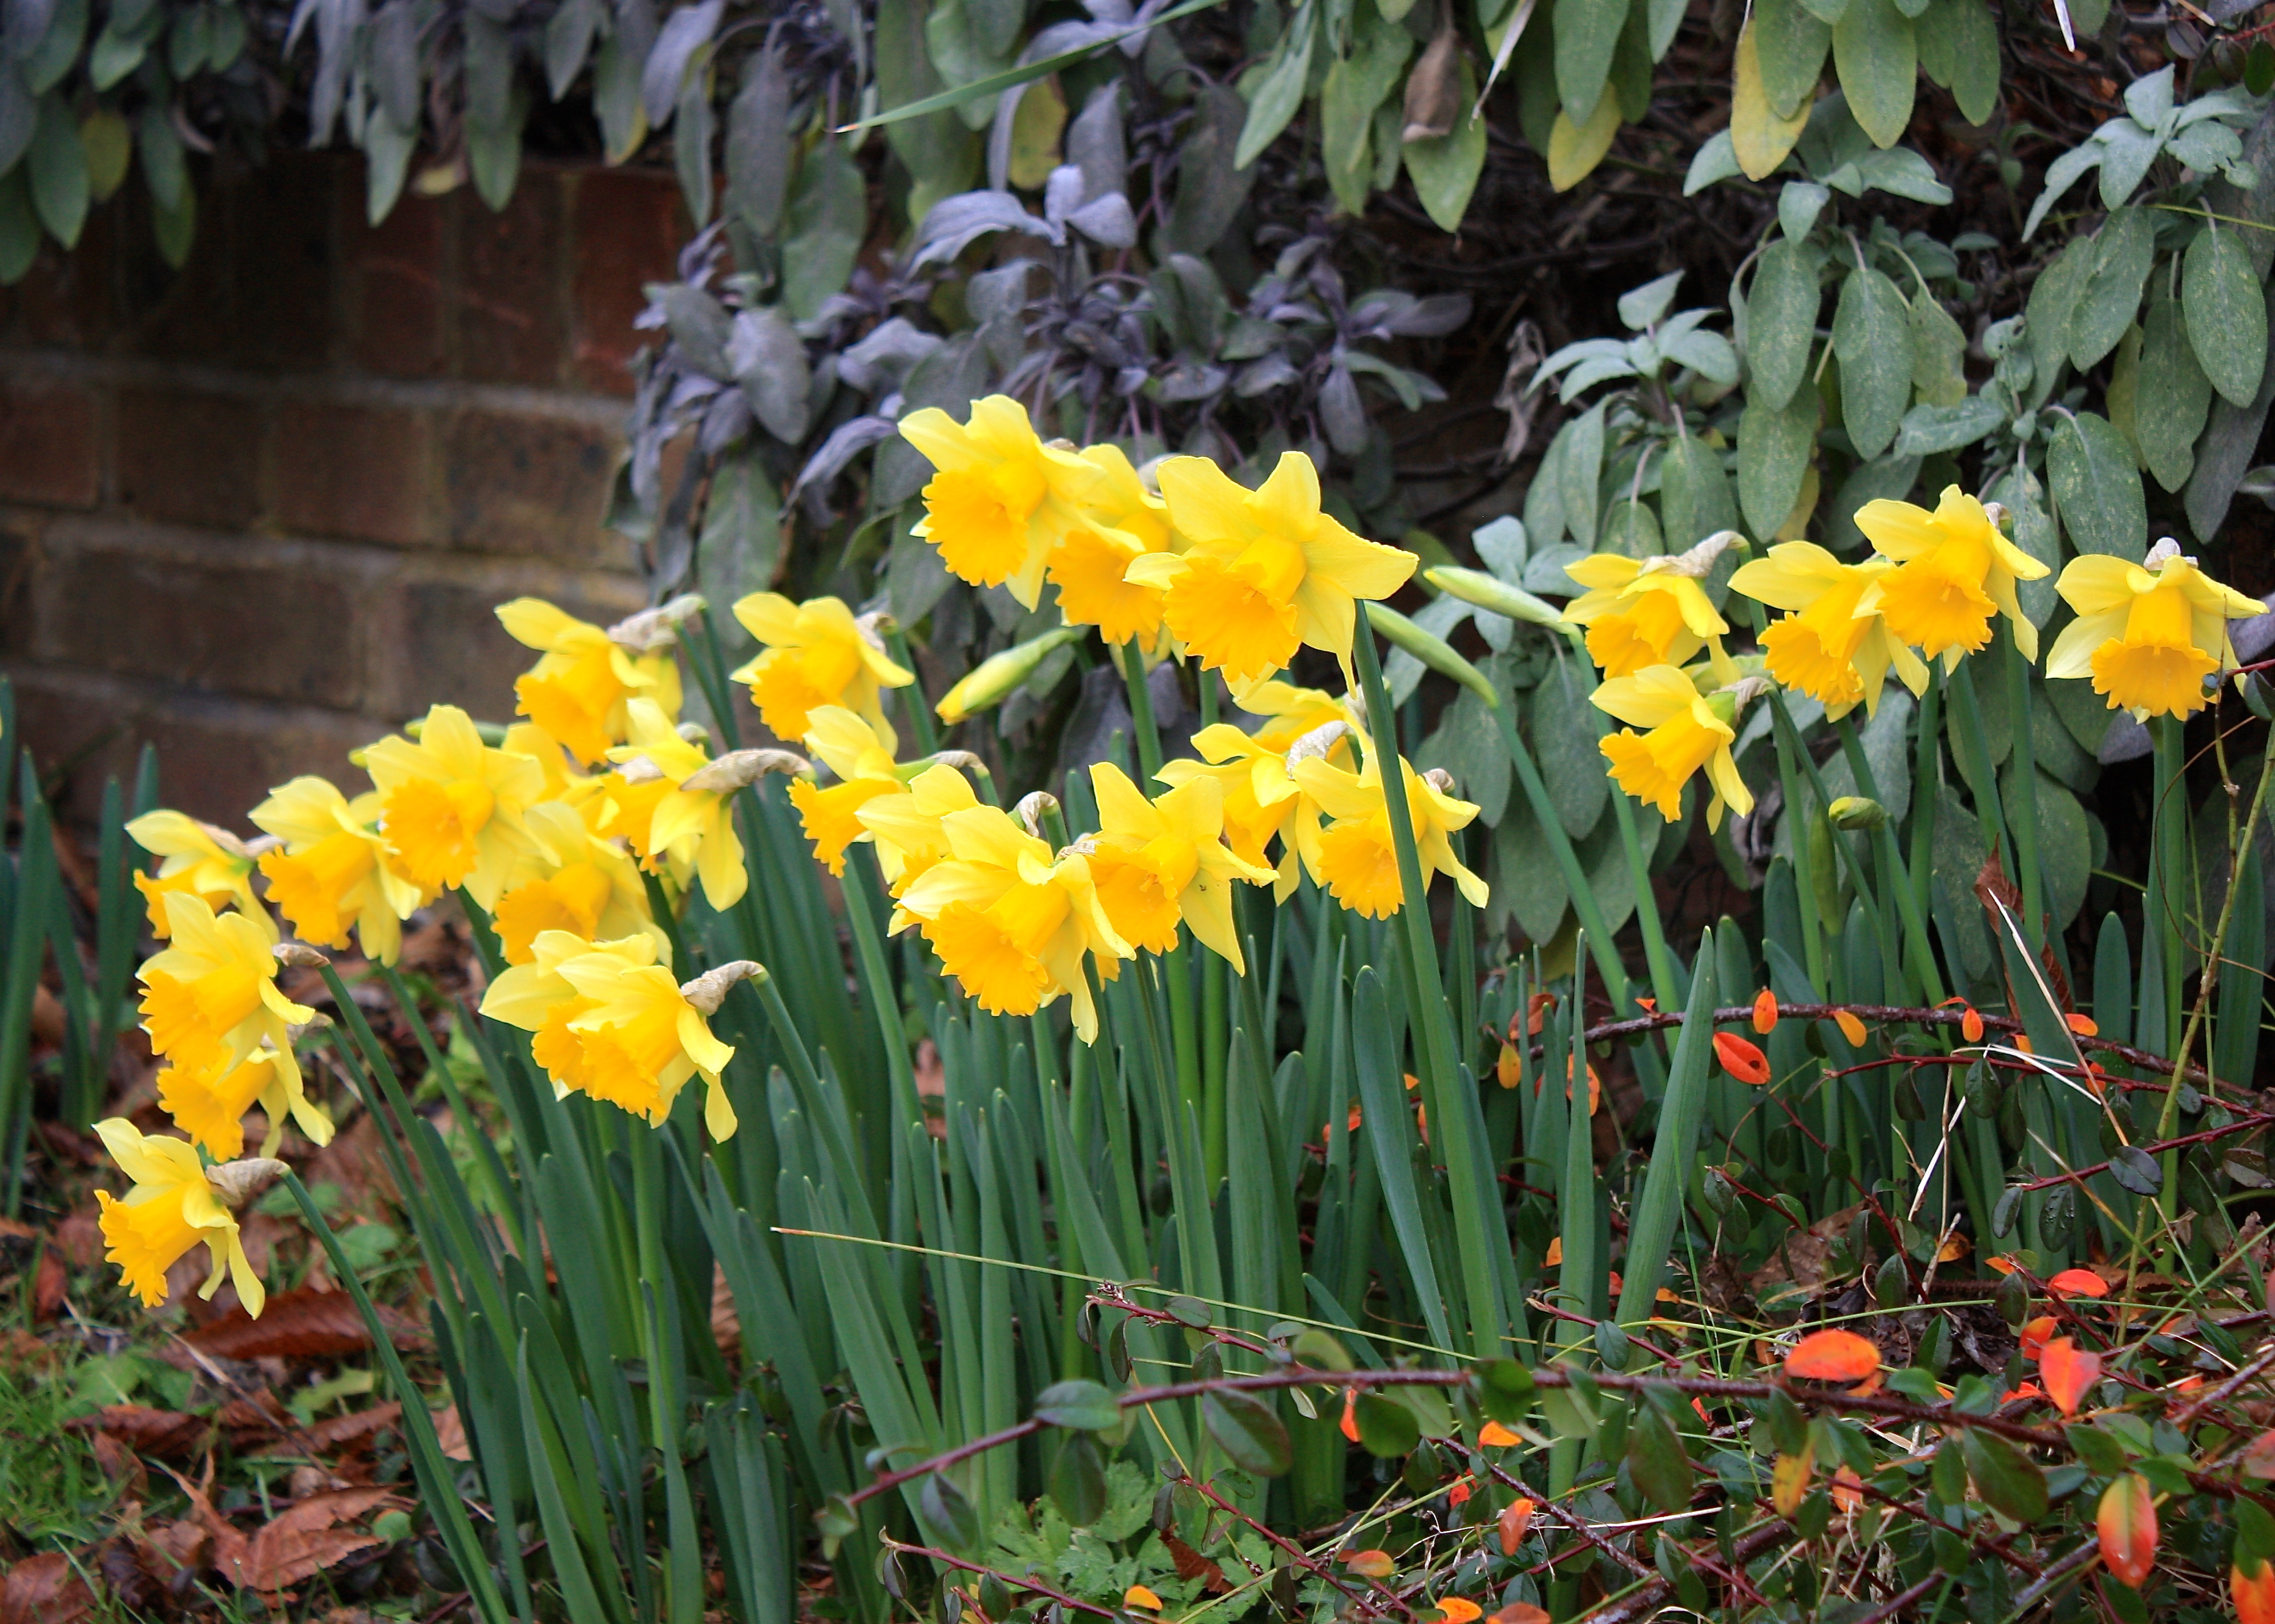 Is climate change responsible for our early blooming flowers daffodil early sensation flowers blooming winter spring garden mightylinksfo